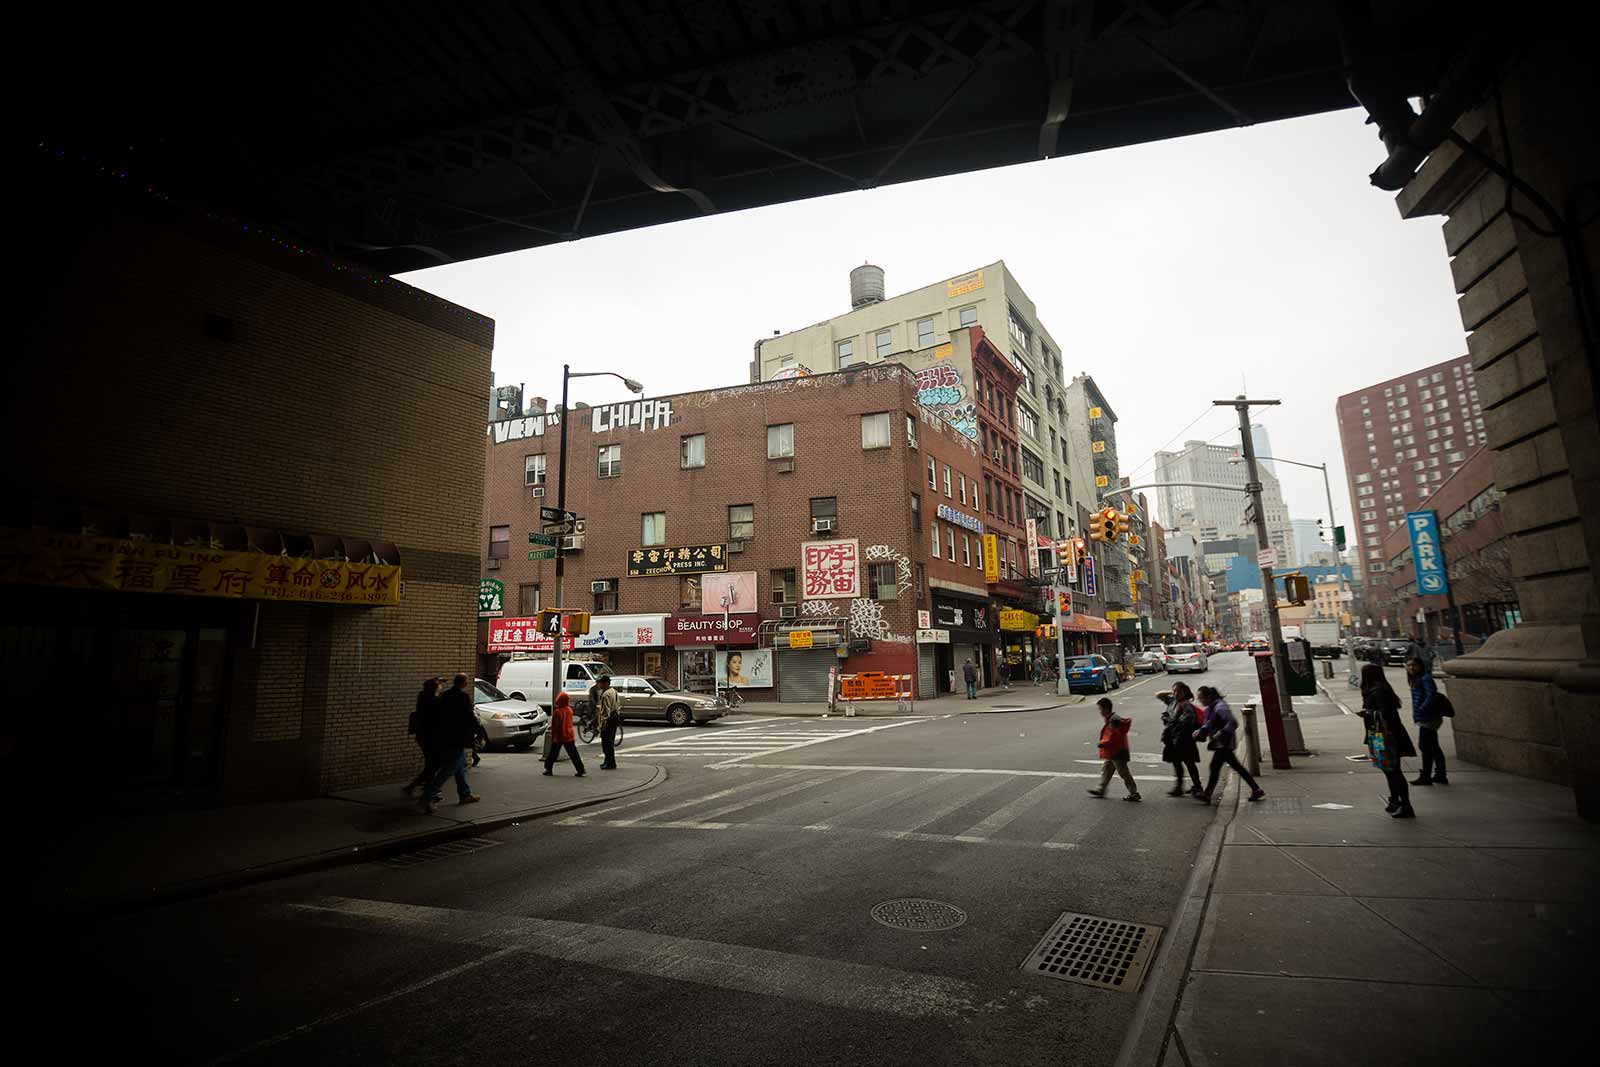 When strolling through New York's Chinatown, you'll sometimes wonder whether you're really in the United States or after all in China.